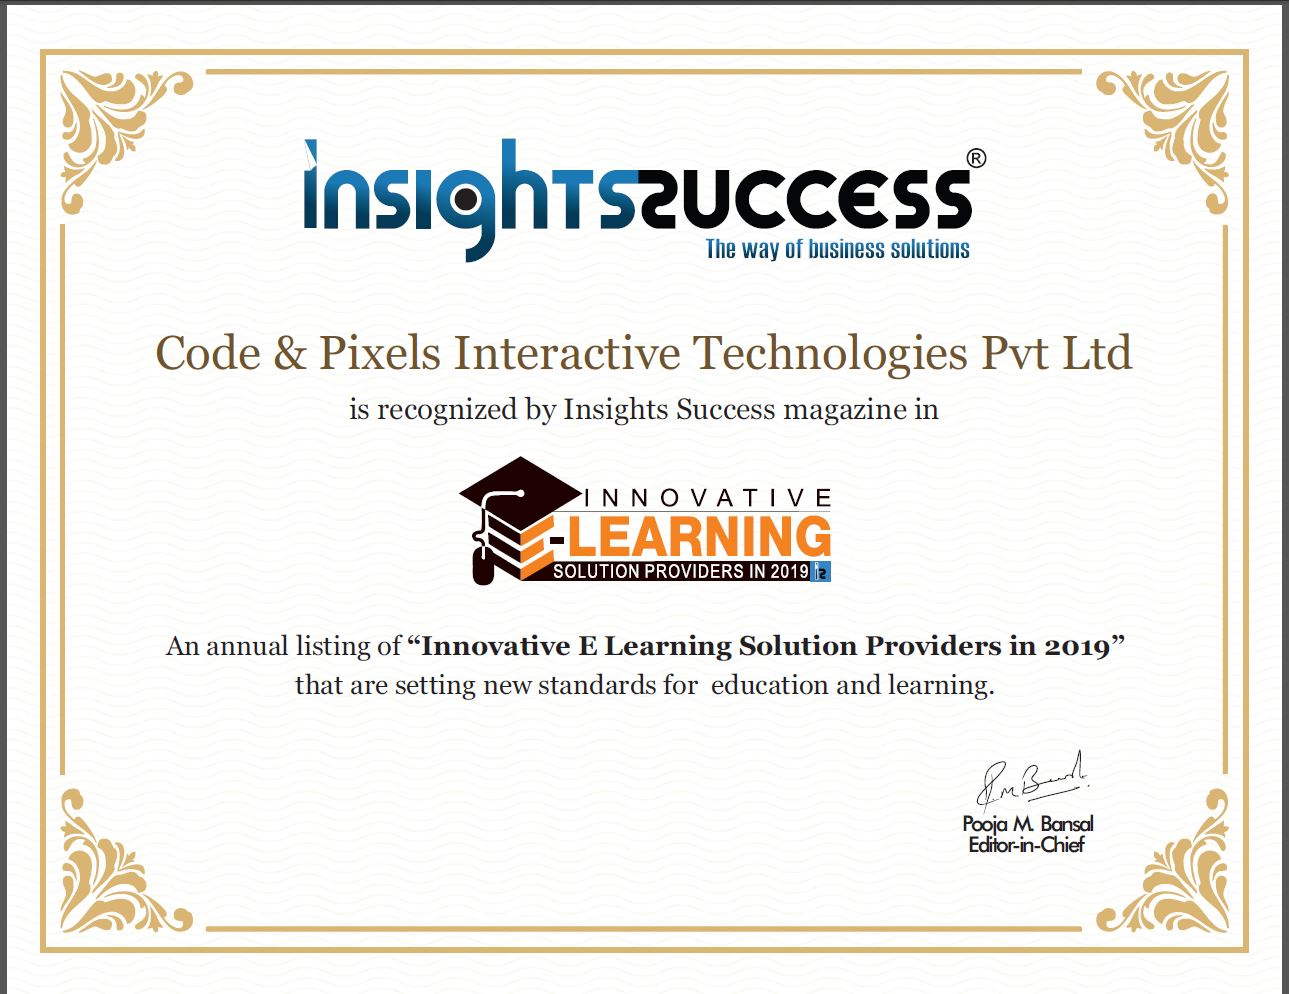 Innovative E Learning Solution Providers in 2019 - Insights Success Magazine